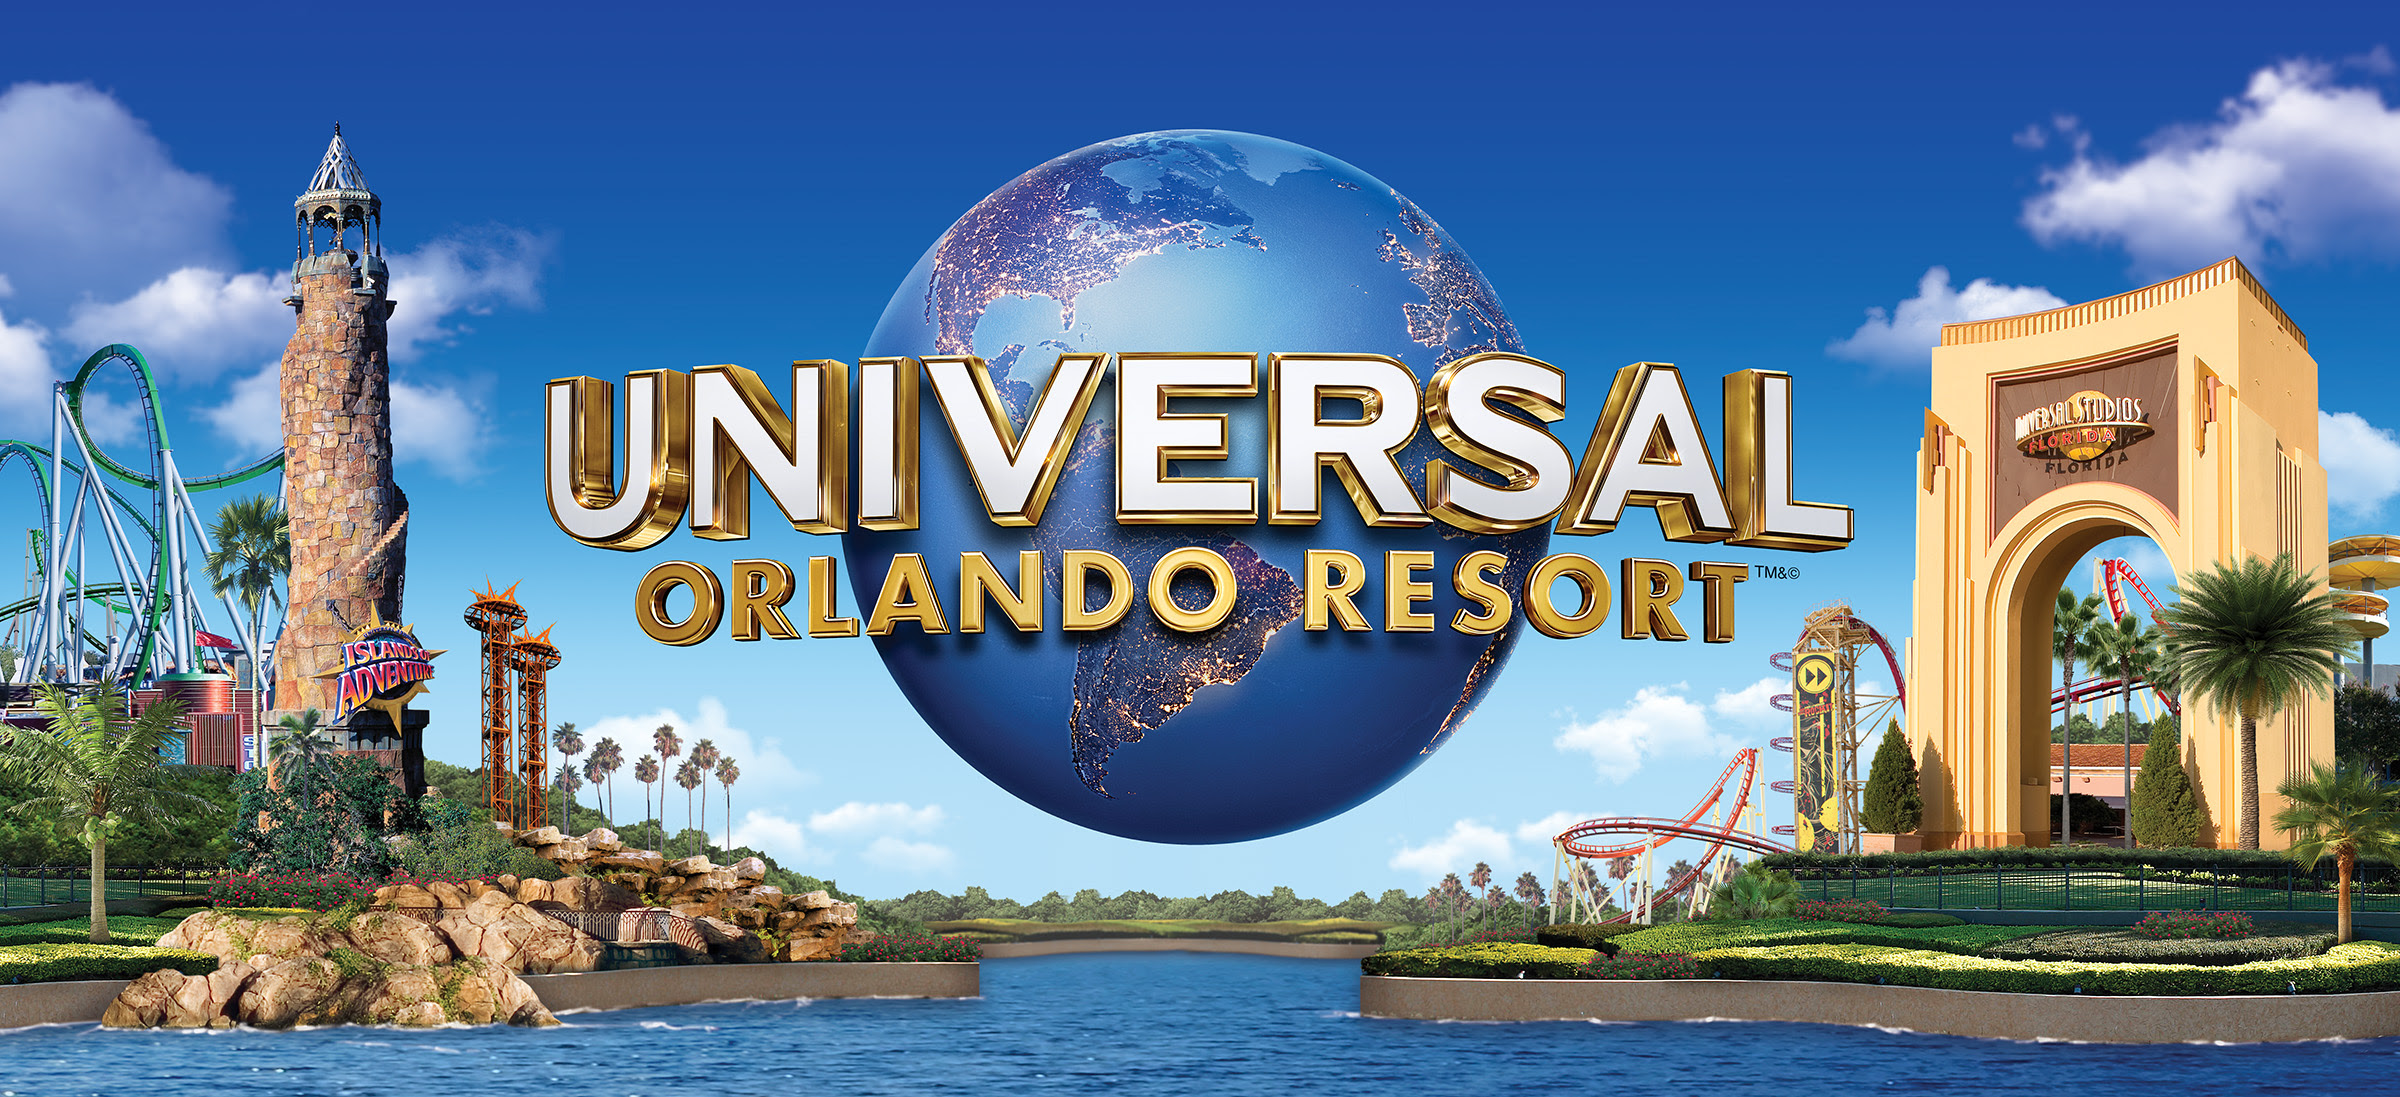 Graduation Parties at Universal Orlando Resort